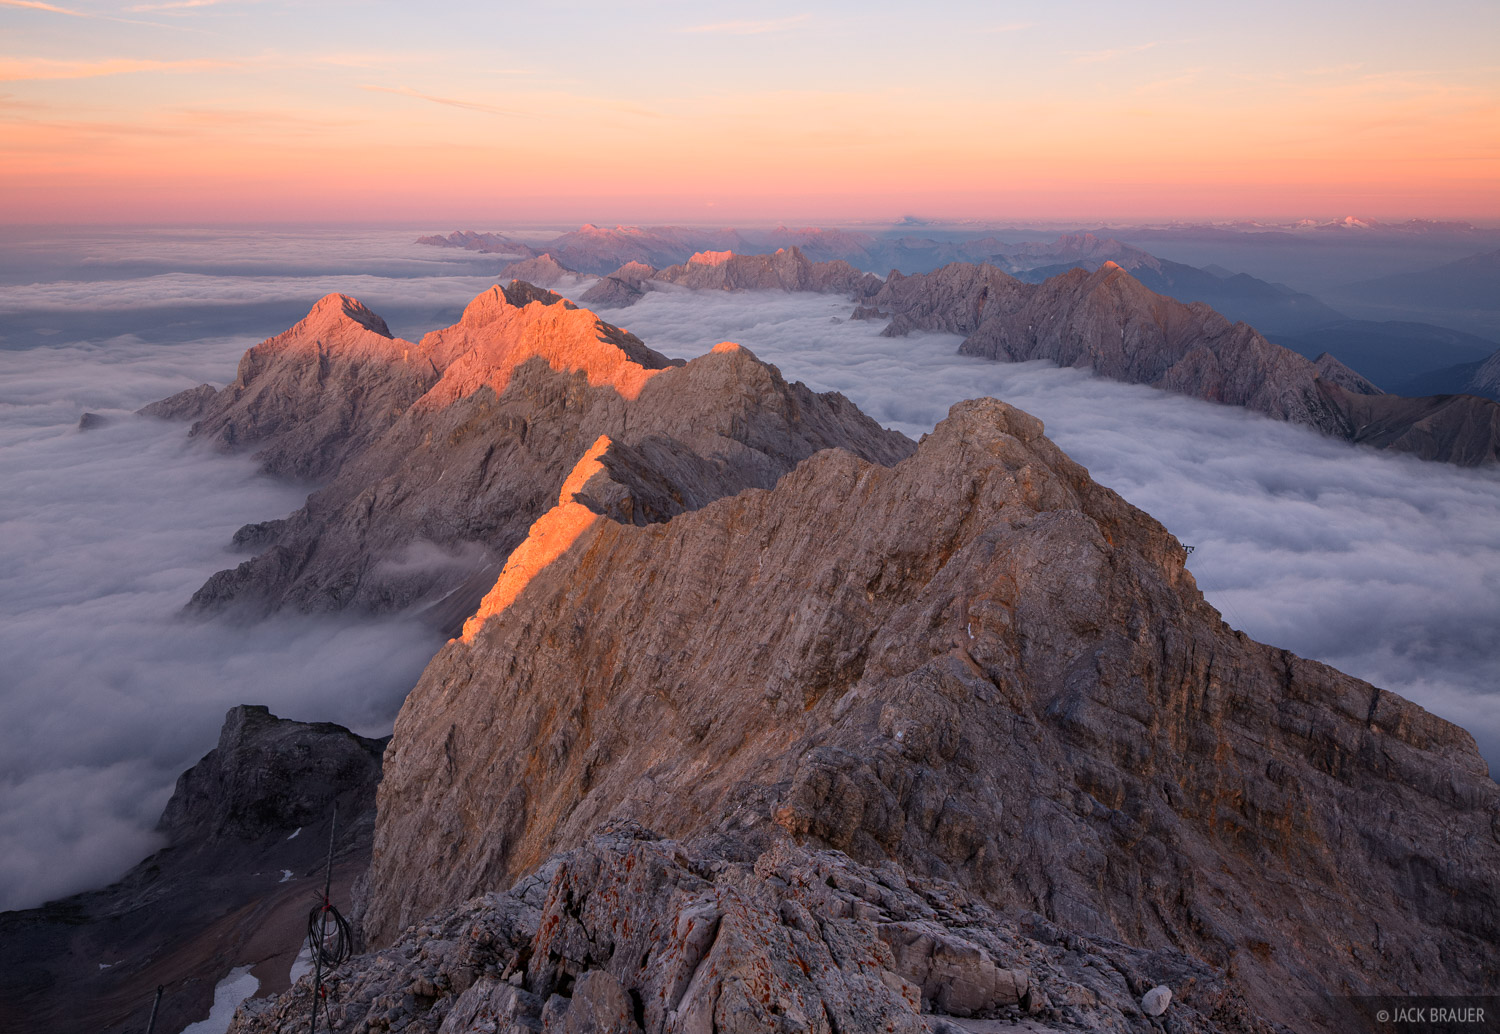 Zugspitze, Wettersteingebirge, Germany, summit, sunset, photo